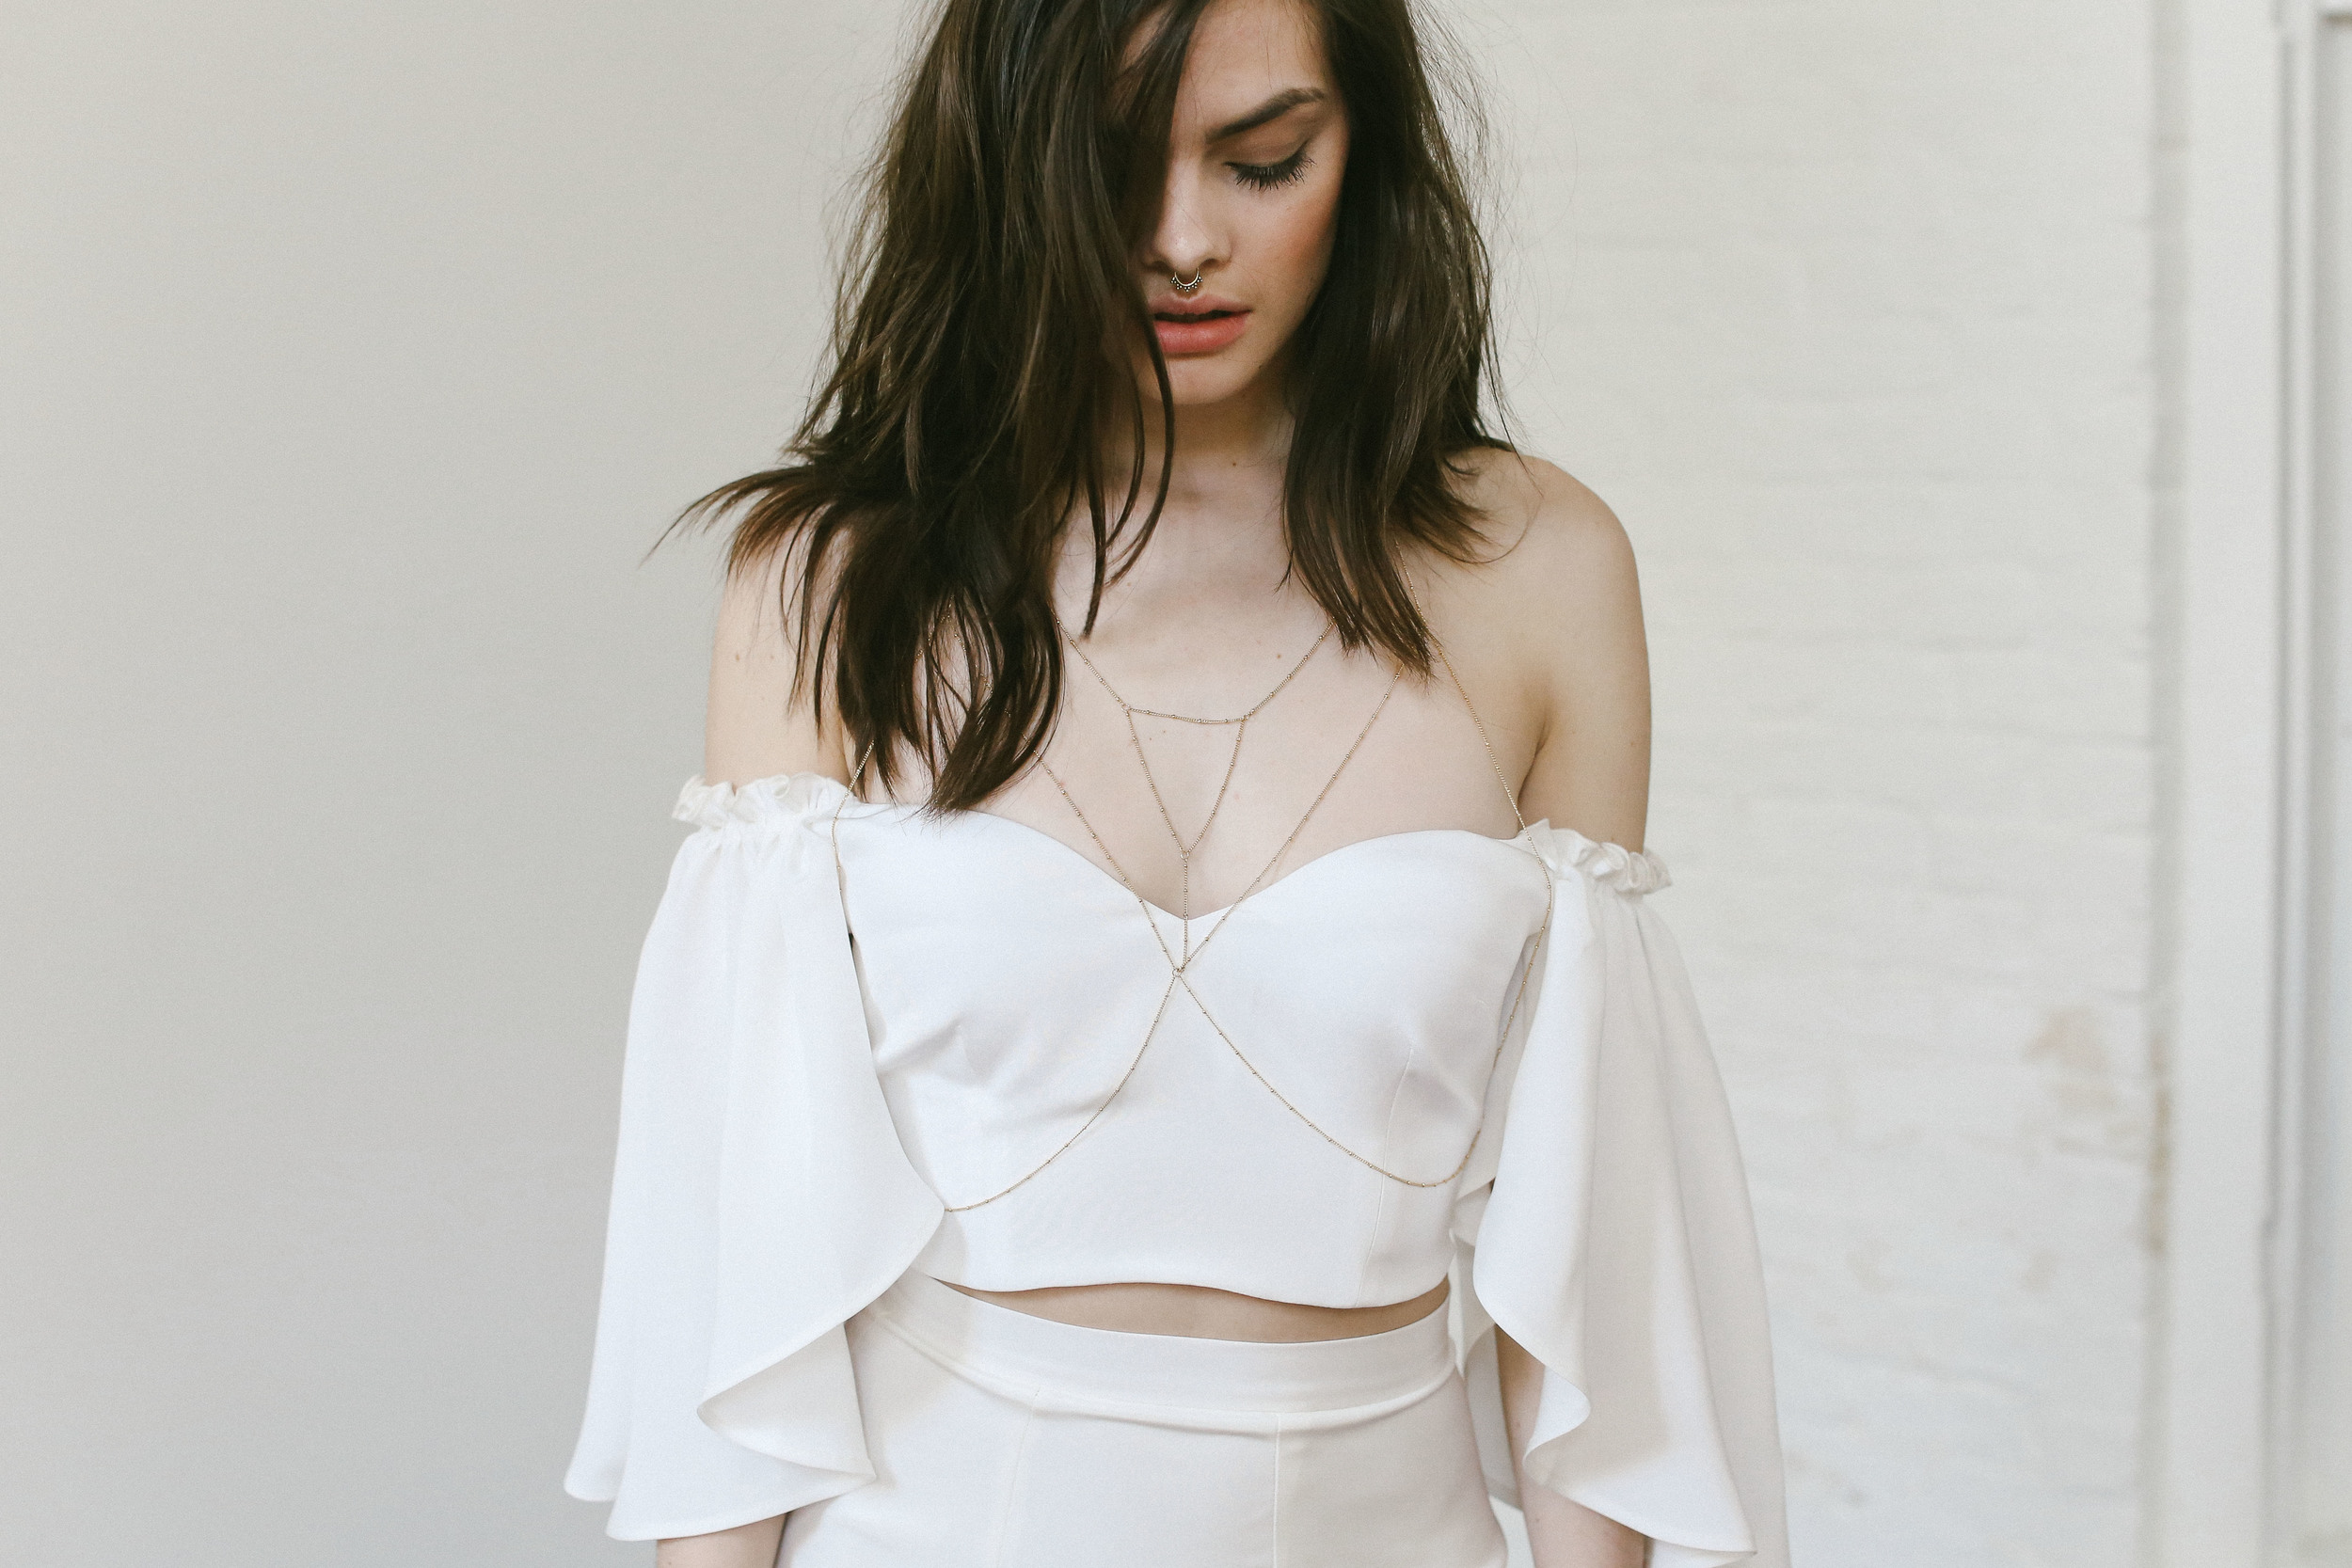 finery-boutique-huntsivlle-alabama-bohemian-wedding-shop-odylyne-the-ceremony-yolan-cris-bride-bridal-yaki-ravid-berta-calla-blanche-lookbook-cool-nashville-tenessee-bardot-natassja-teo-piece-crop